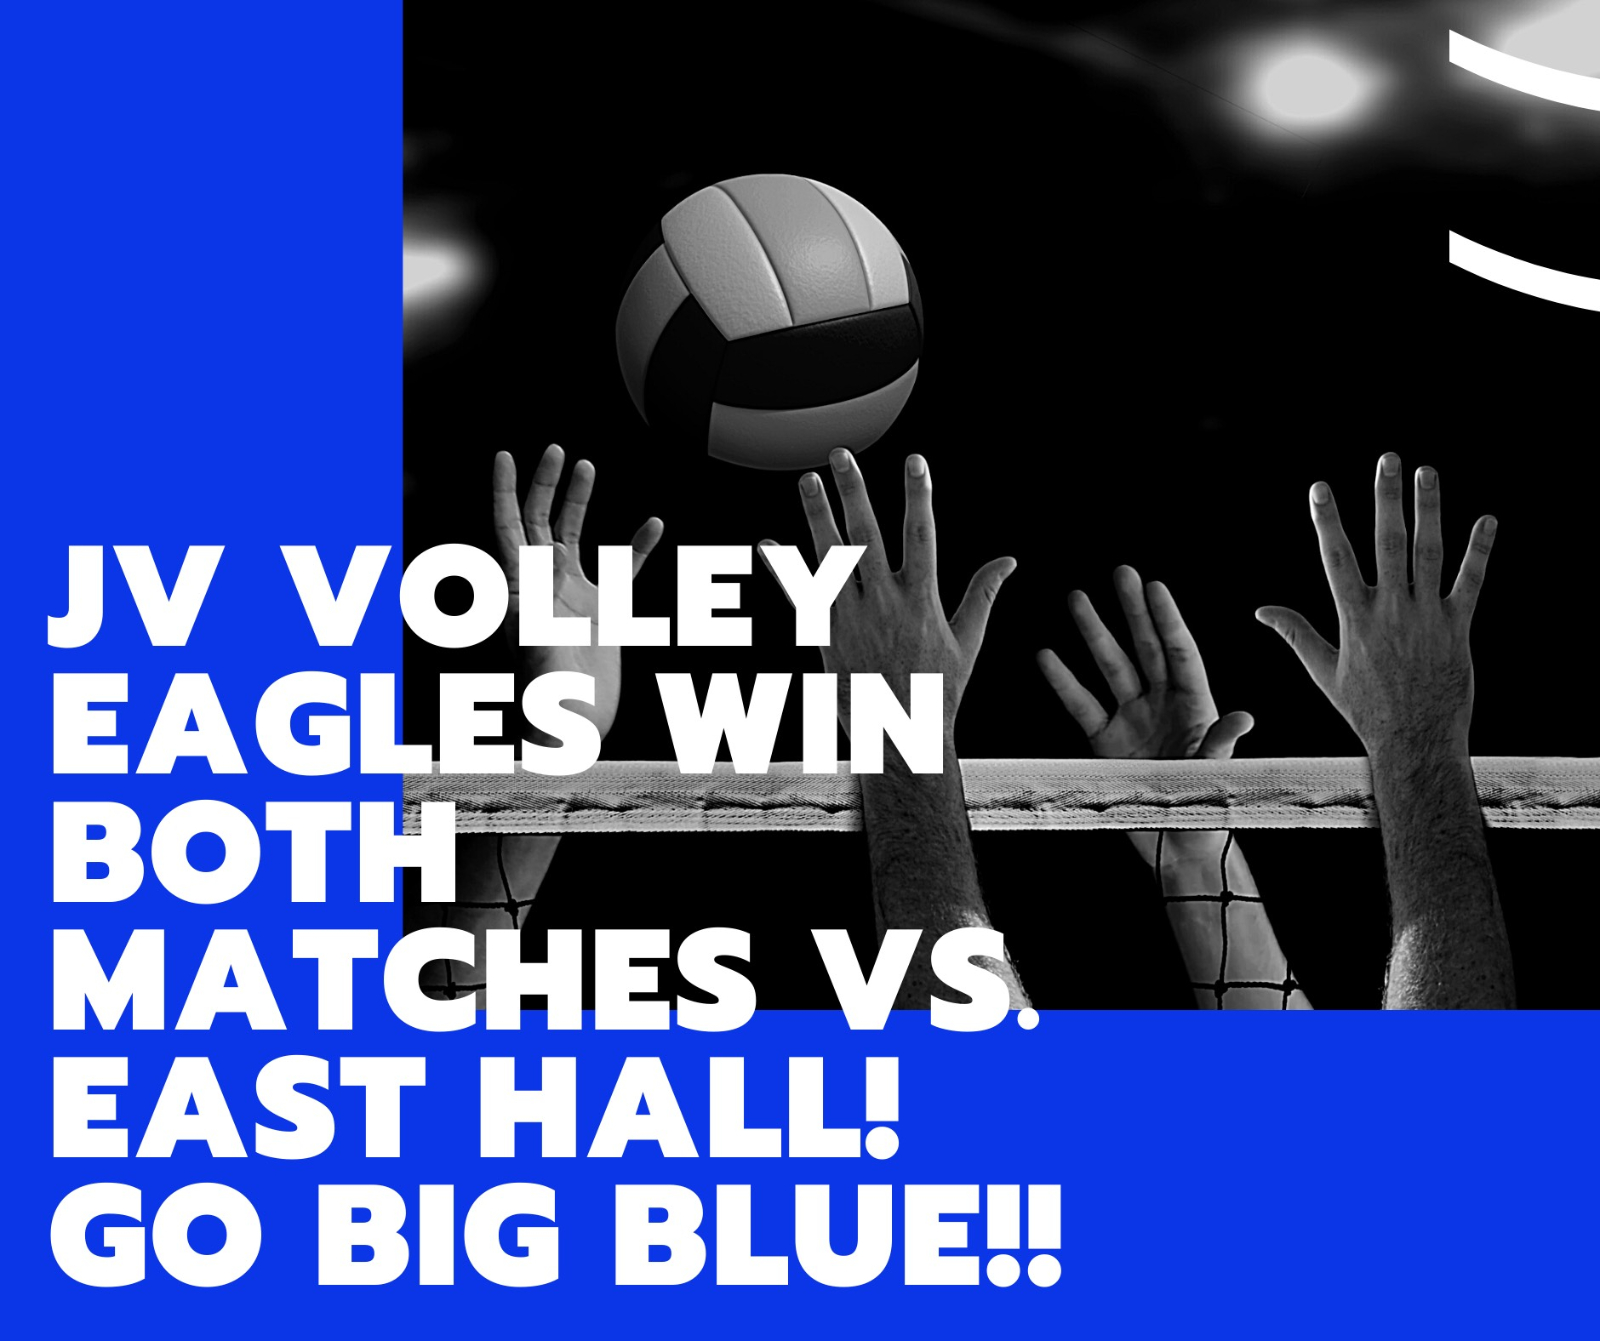 JV Volley Eagles Win Both Matches